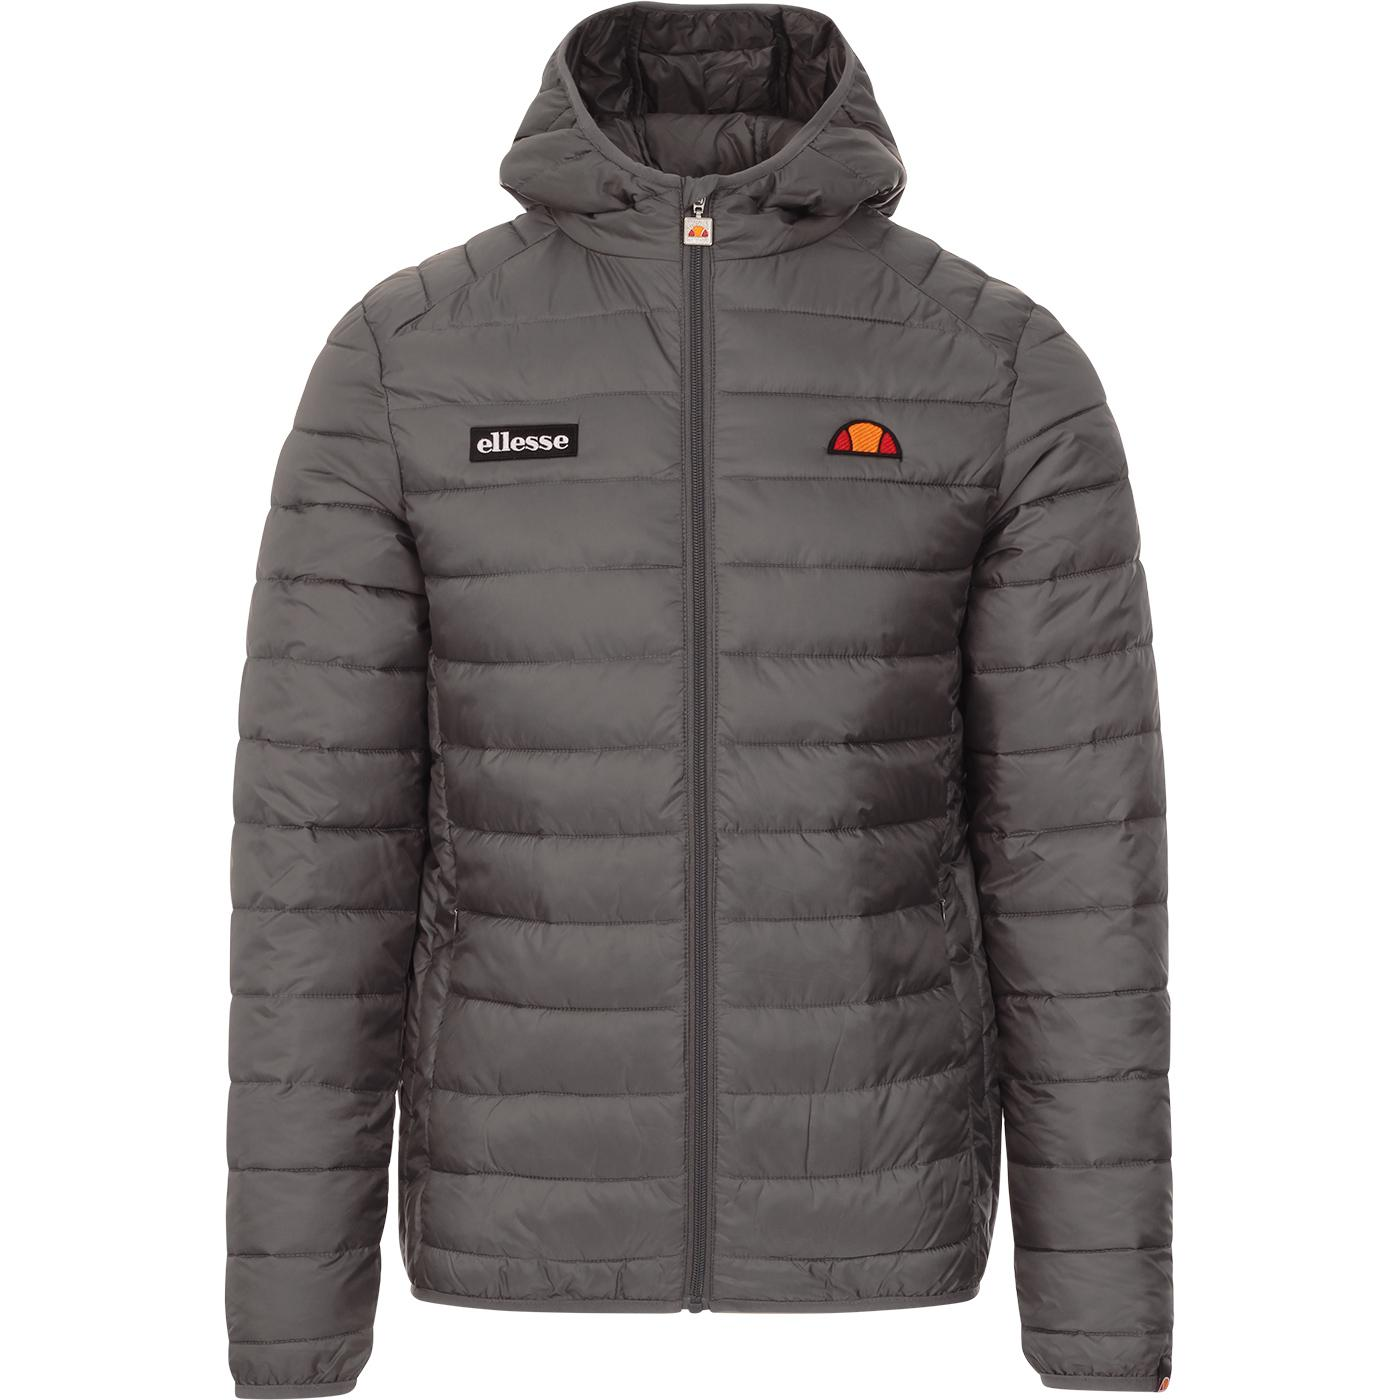 Lombardy ELLESSE Retro Mens Quilted Ski Jacket DG